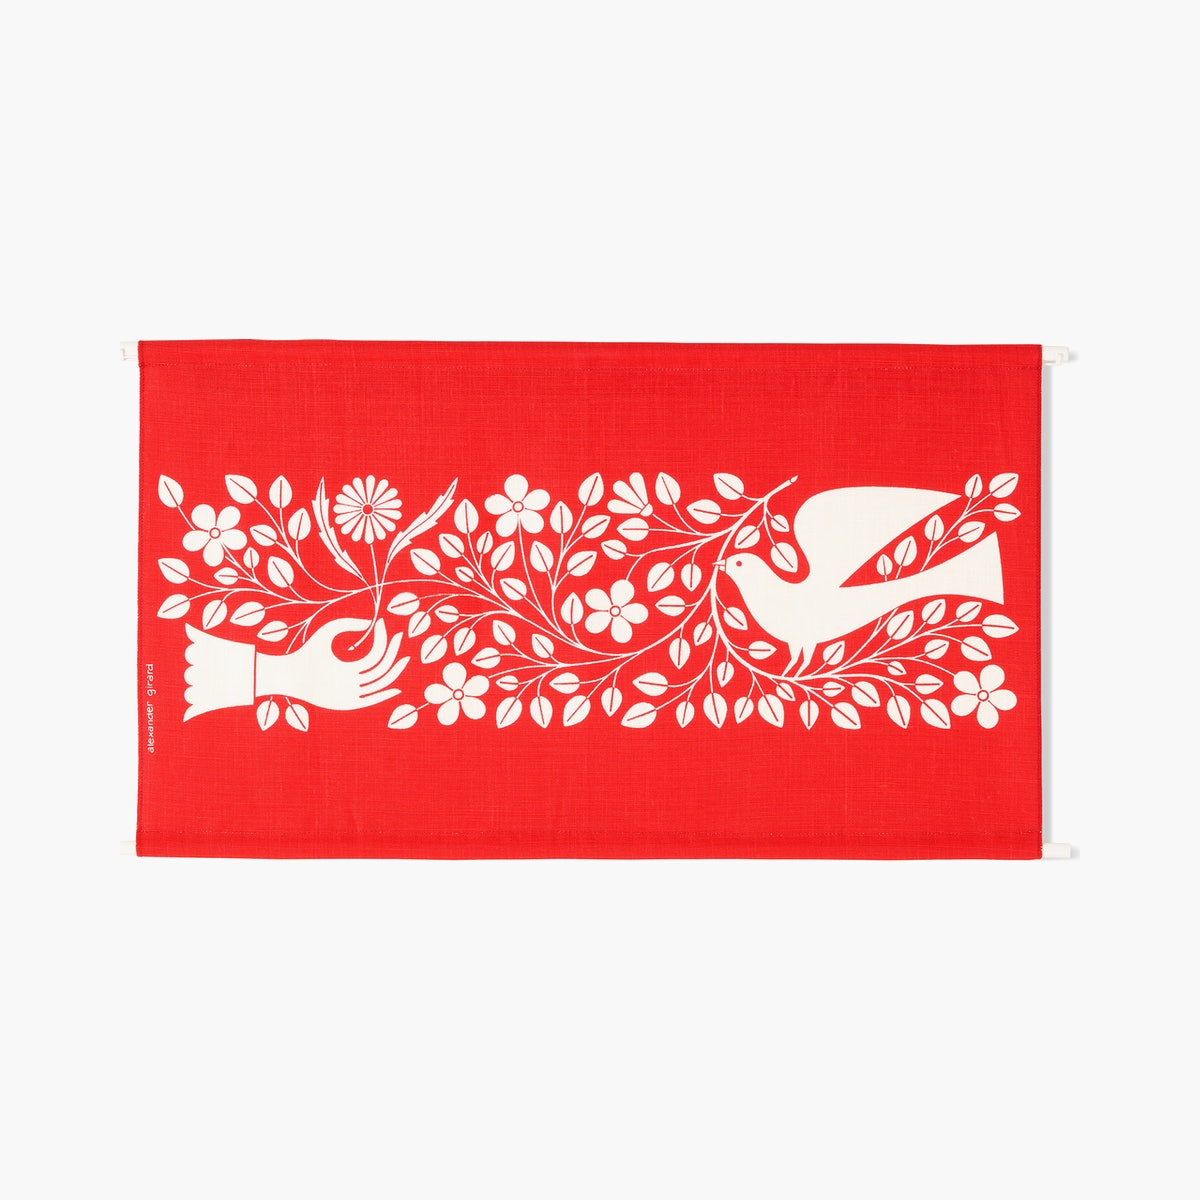 """Hand & Dove"" by Alexander Girard"